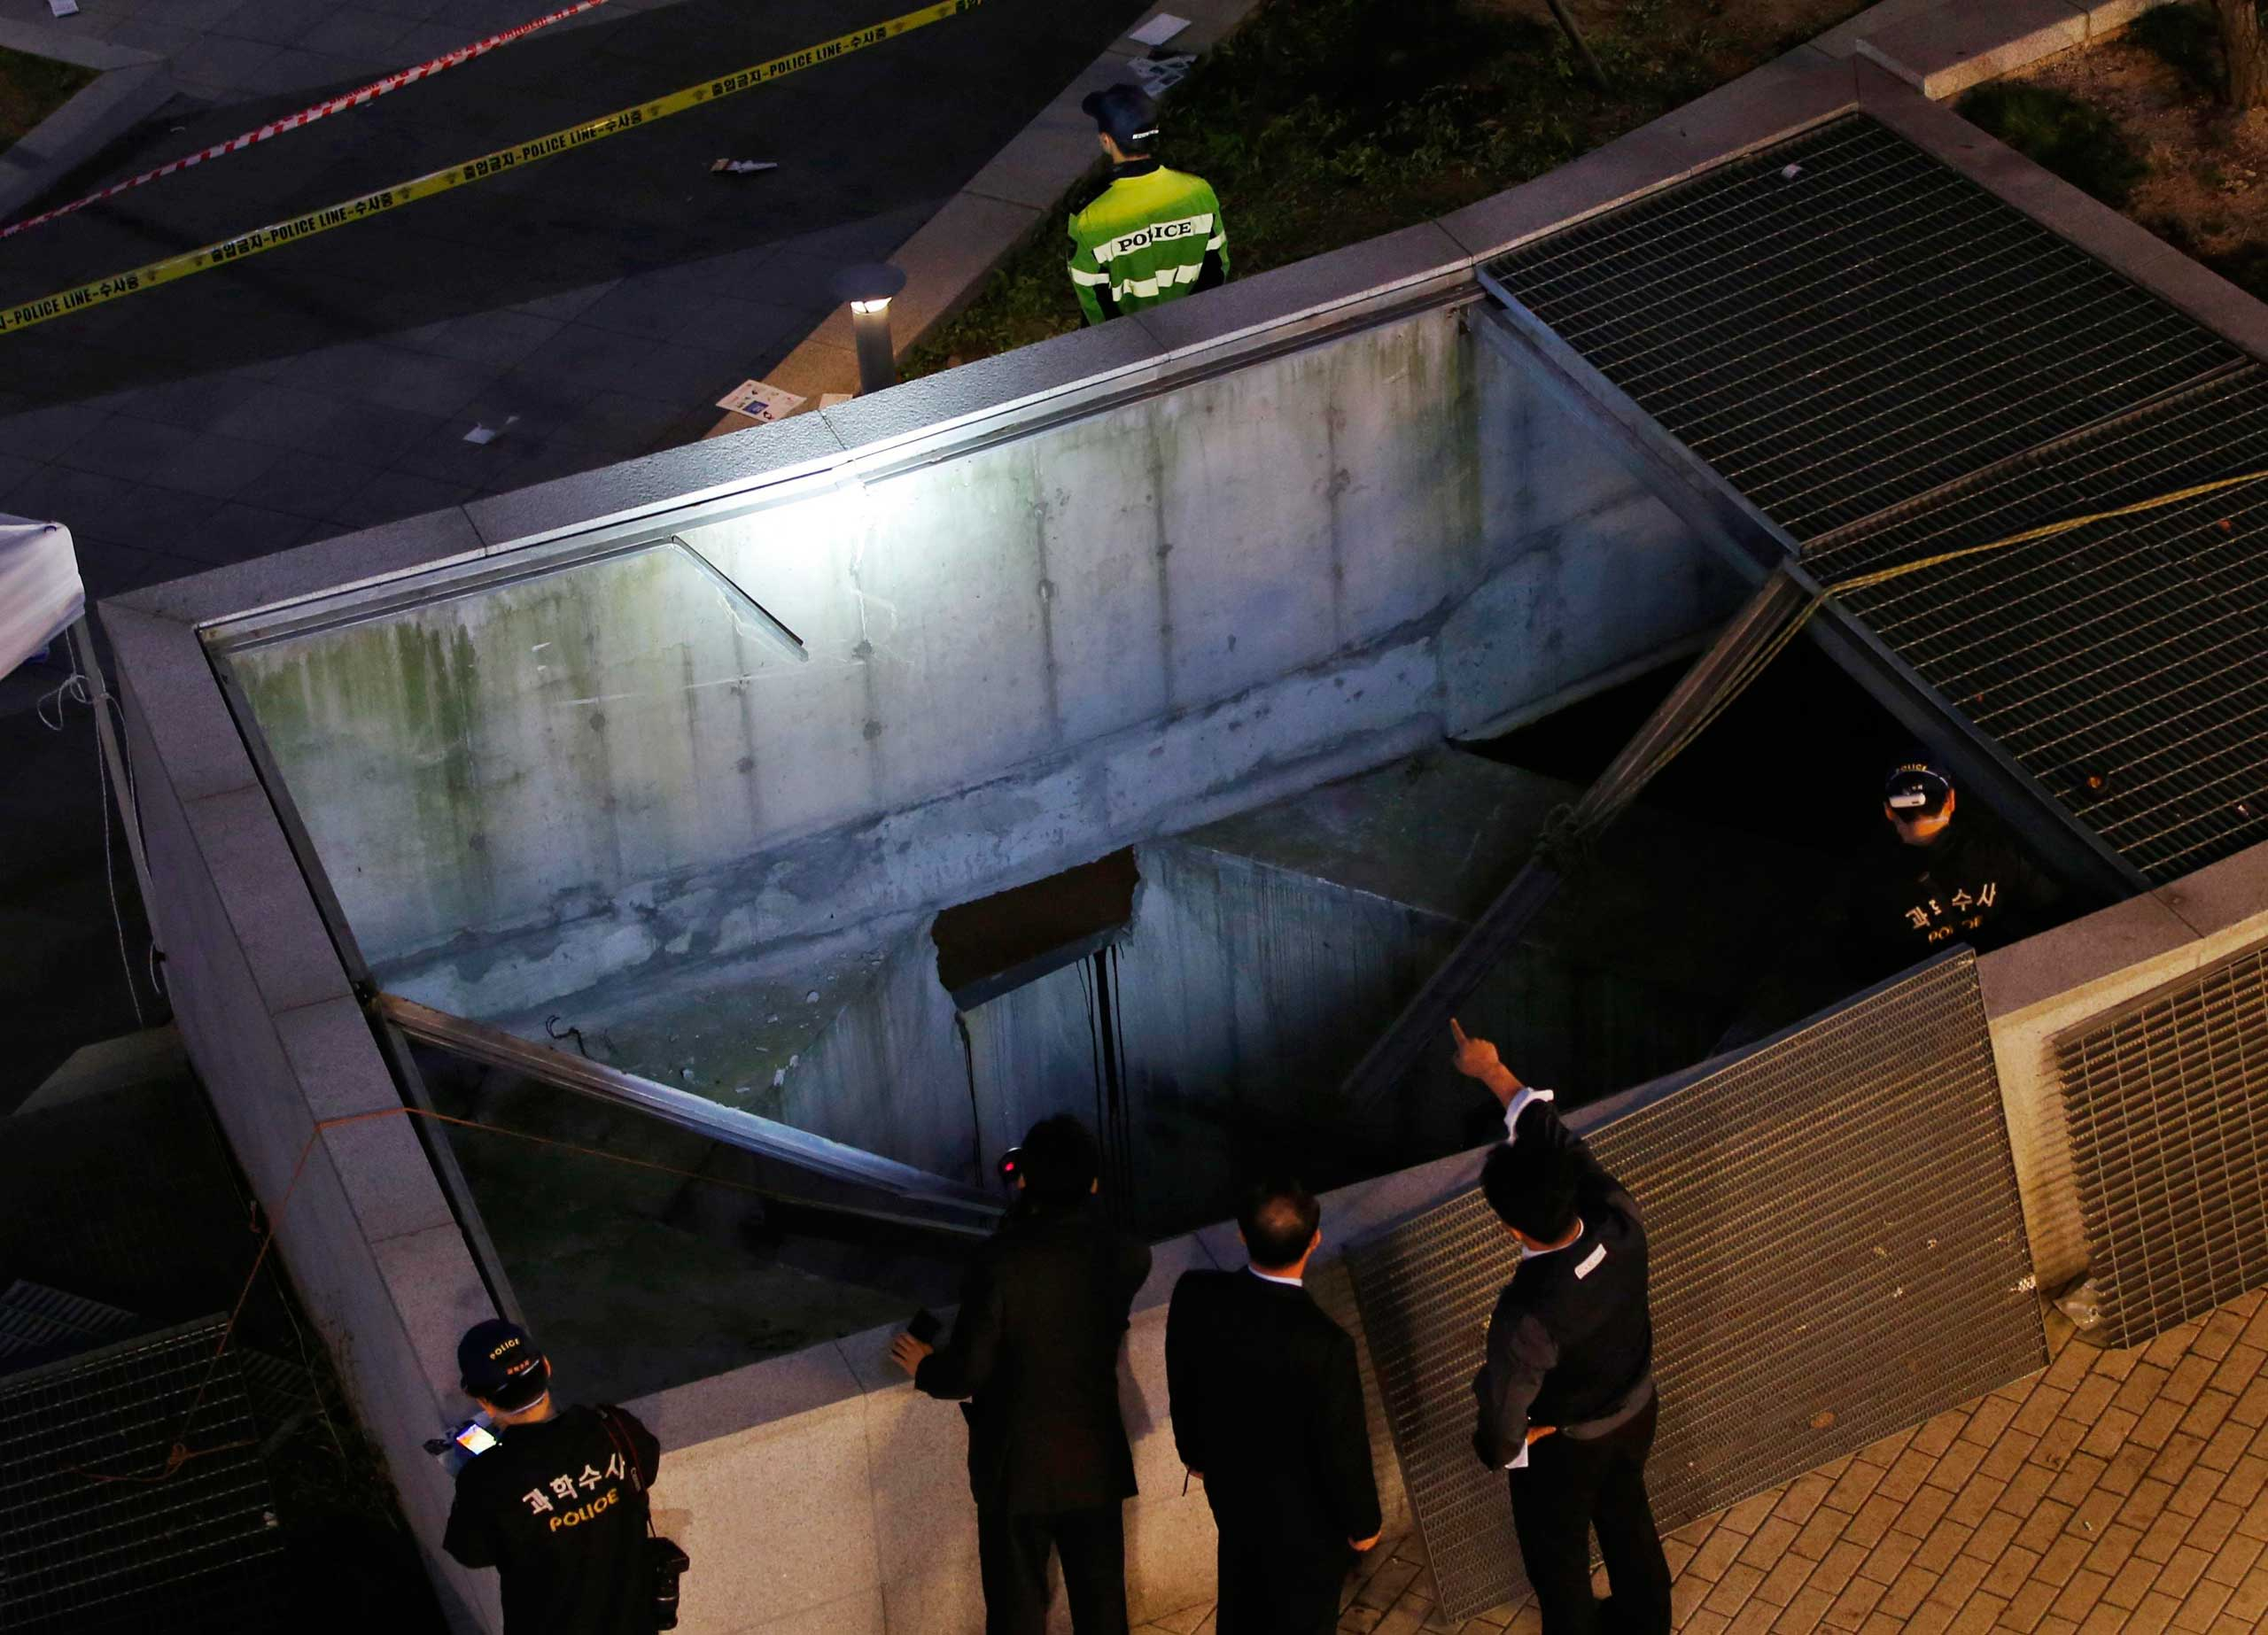 Oct. 17, 2014. Police officials examine the scene of an accident at a shopping district in Seongnam. Fourteen people were killed at a open-air pop concert in South Korea on Friday when the cover of a ventilation shaft they were standing on gave way, officials and media said.